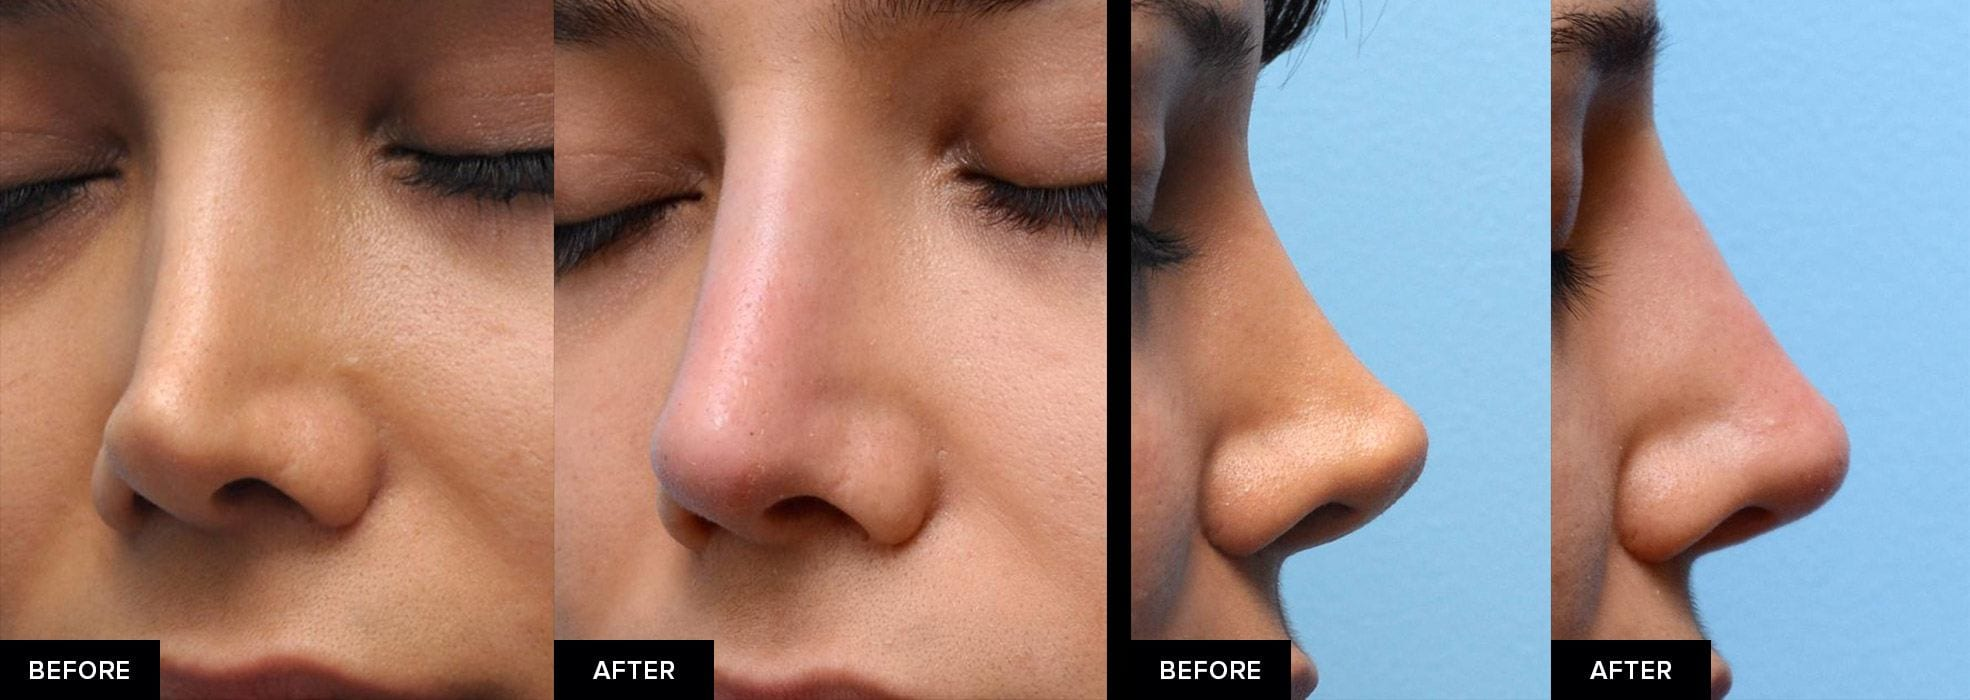 Nonsurgical rhinoplasty before-and-after from 2 perspectives